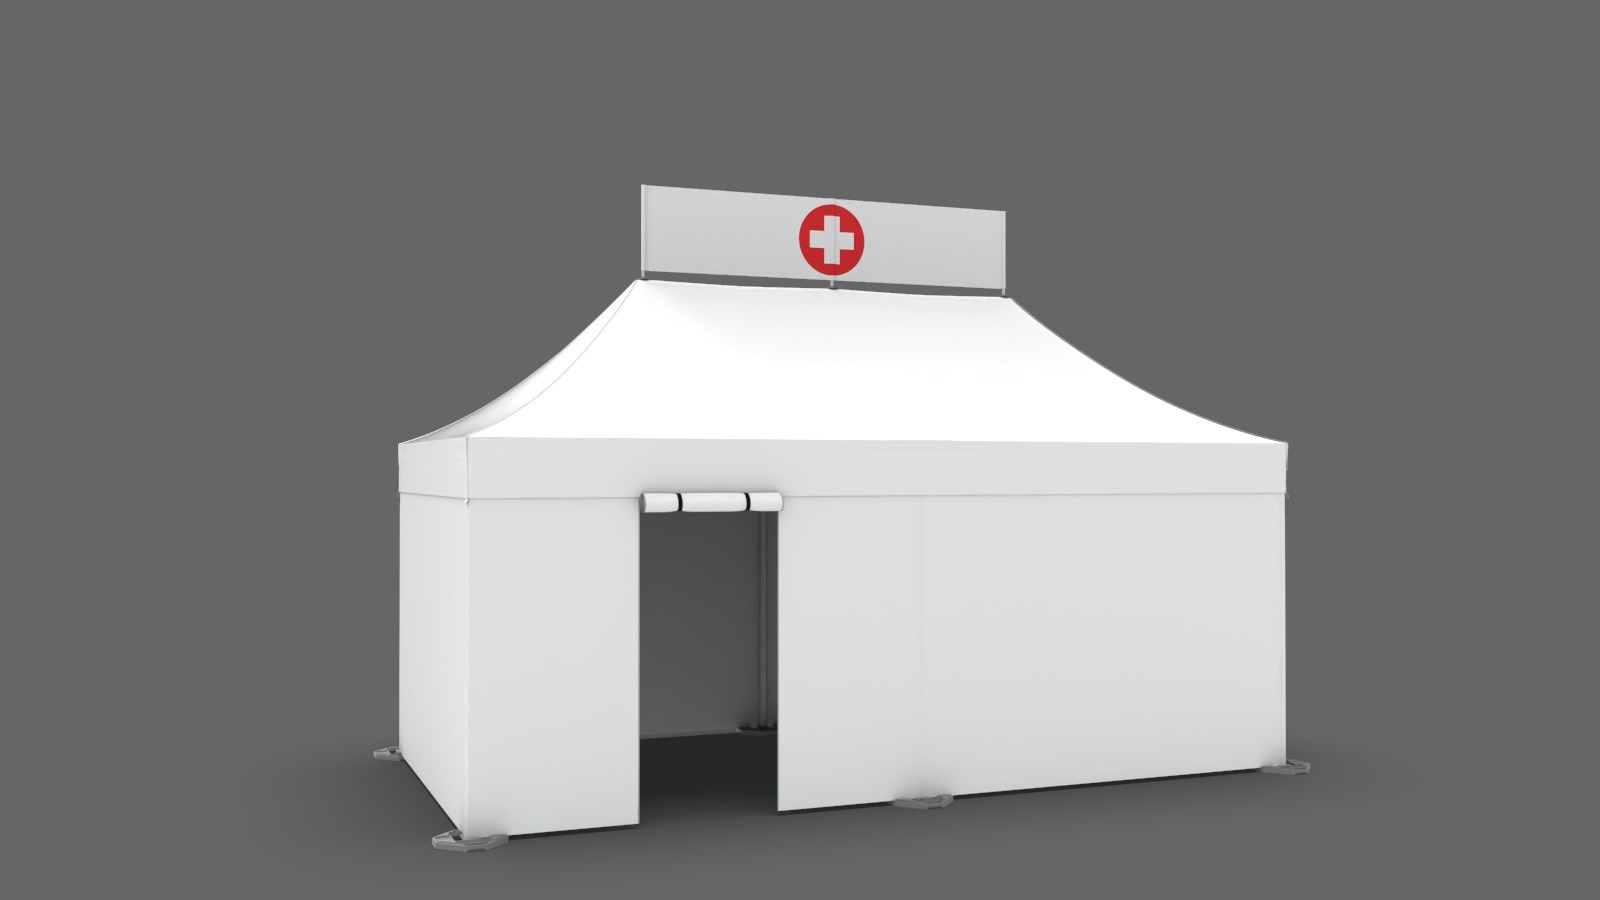 White 10x20 medical tent with roll-up door and custom peak banner with a red cross